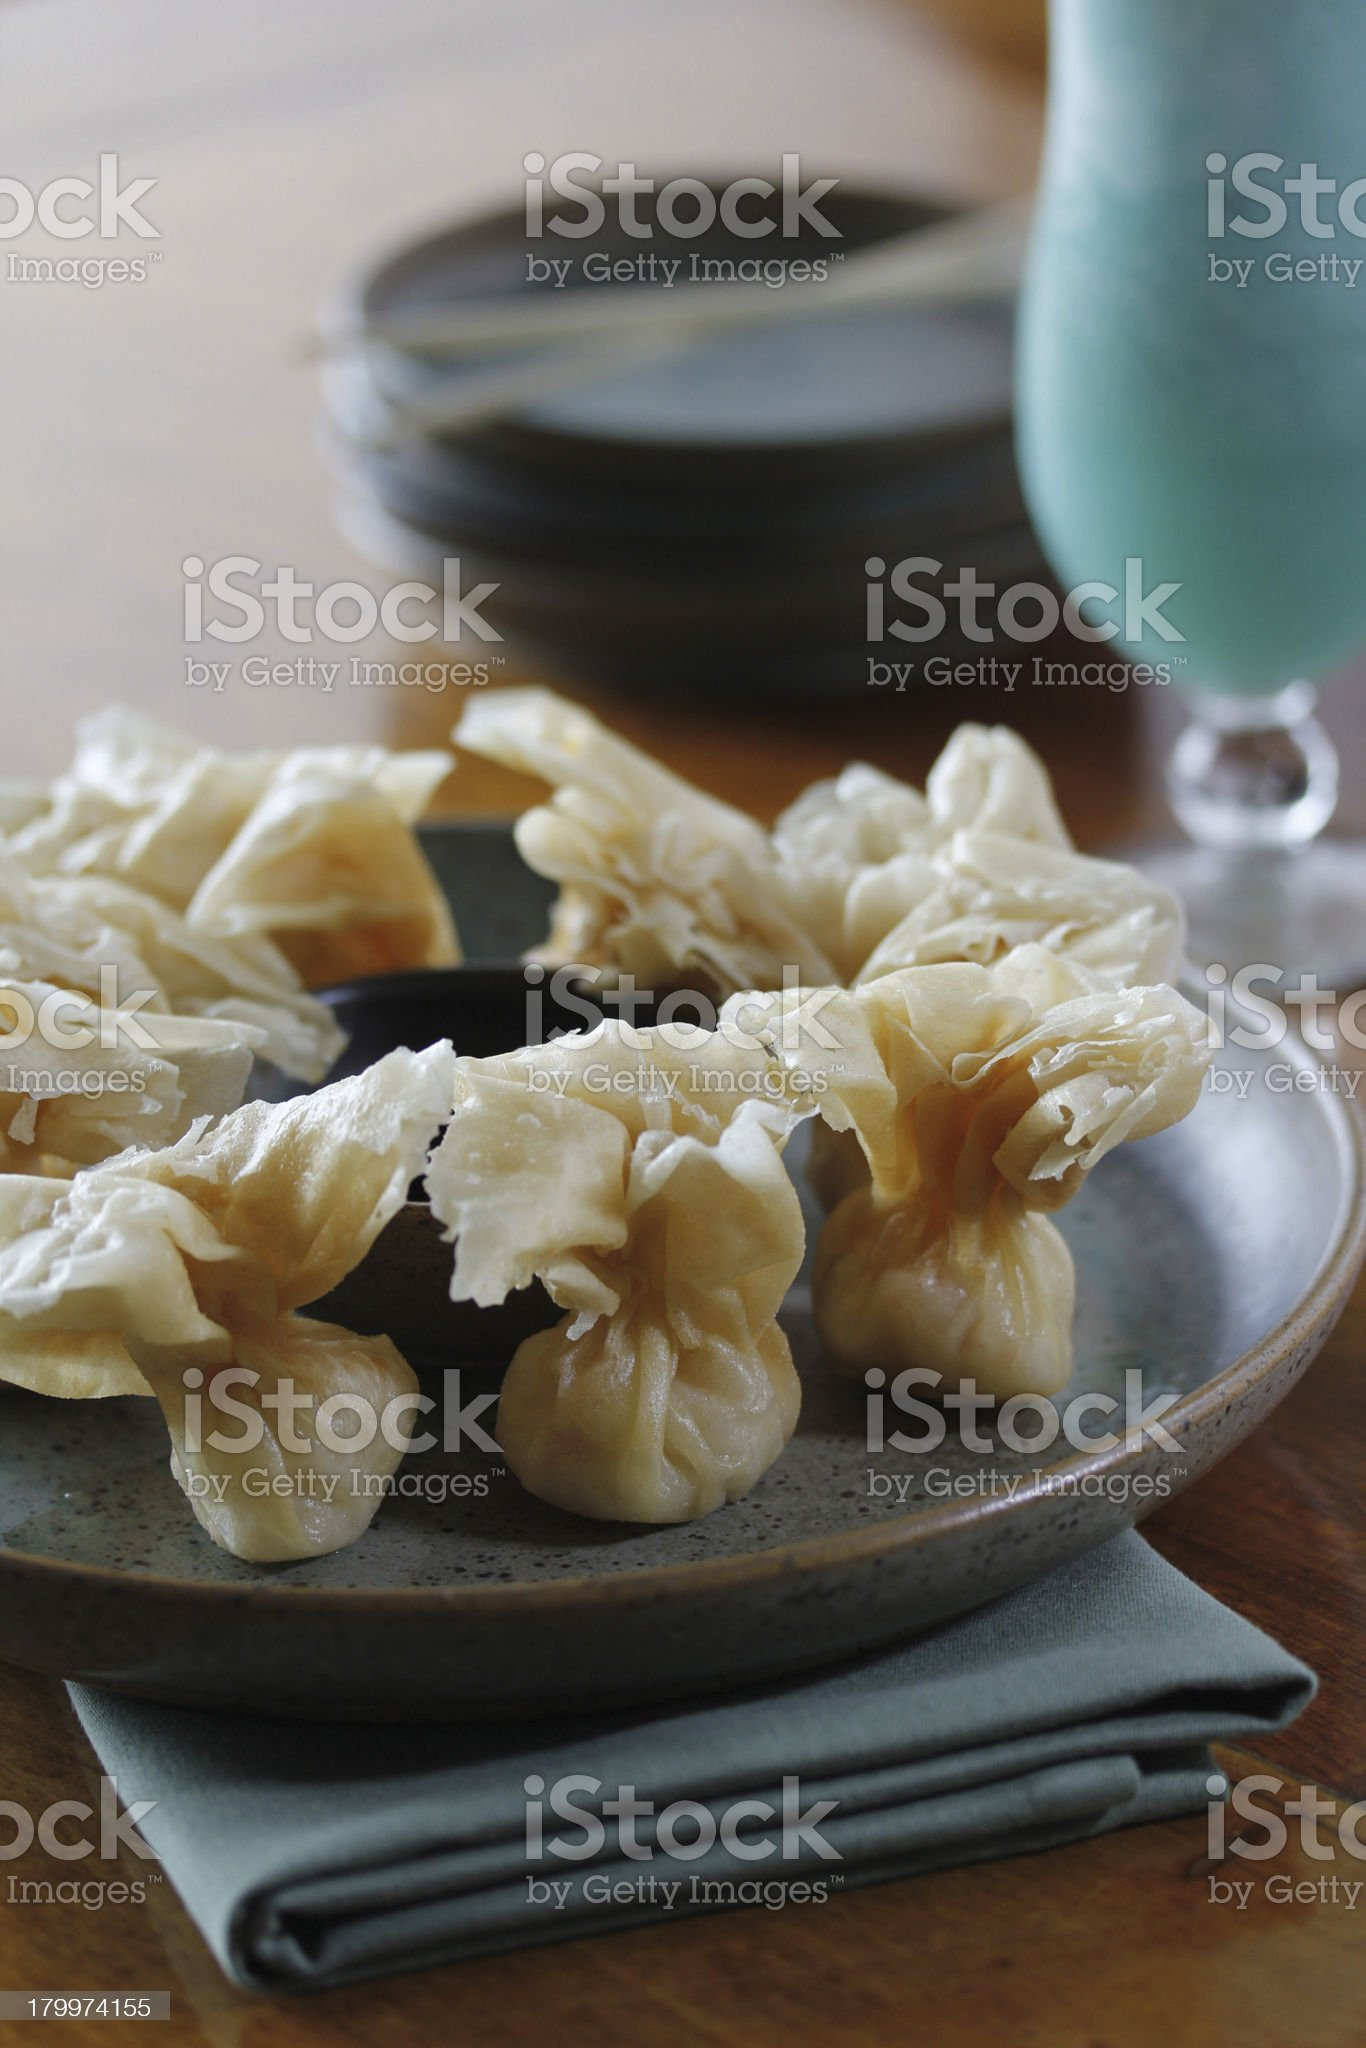 Fried Dumplings royalty-free stock photo